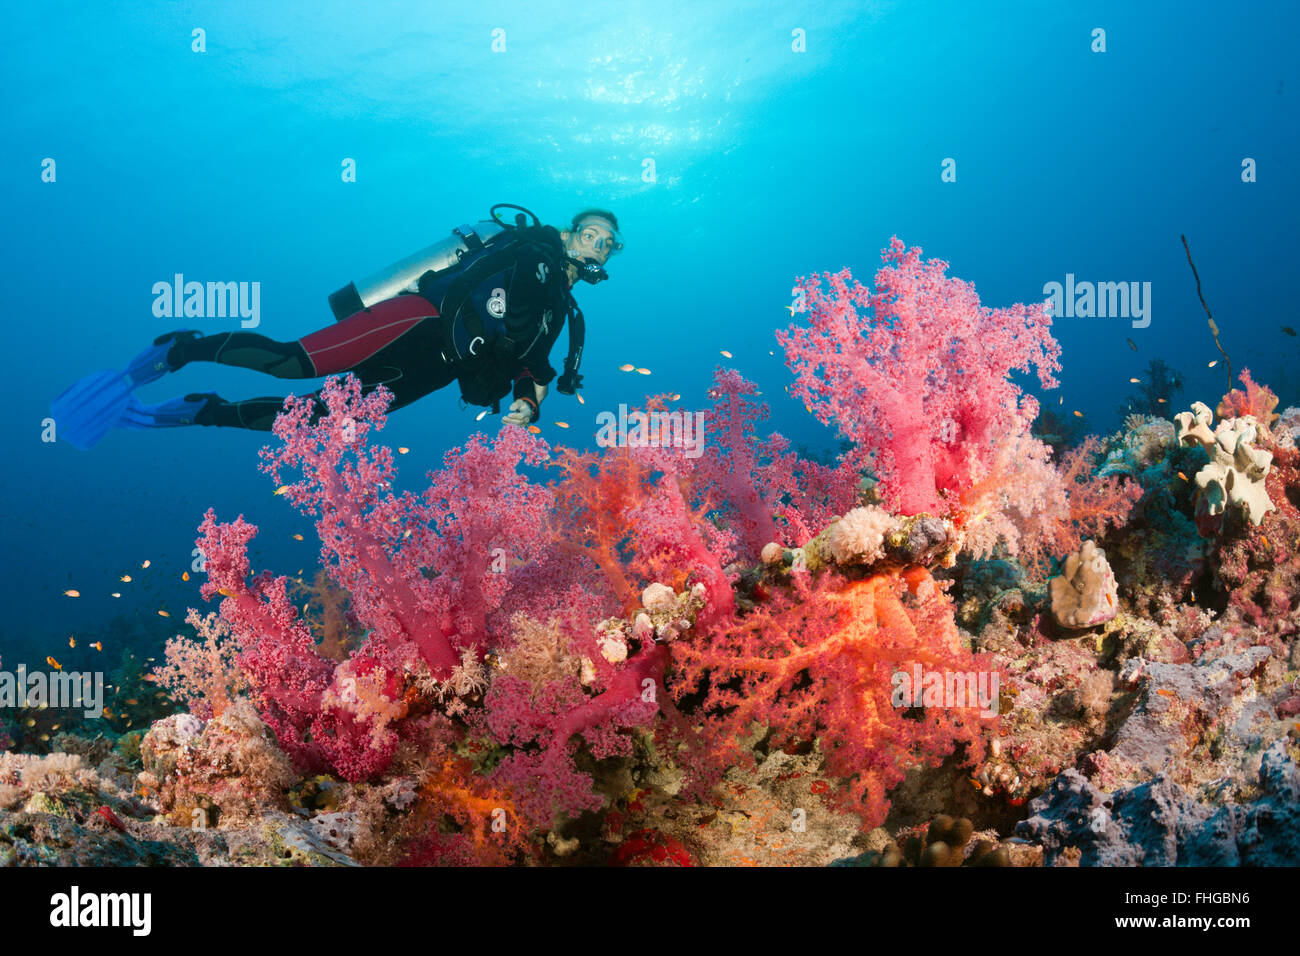 Scuba Diver over Coral Reef, Red Sea, Ras Mohammed, Egypt - Stock Image